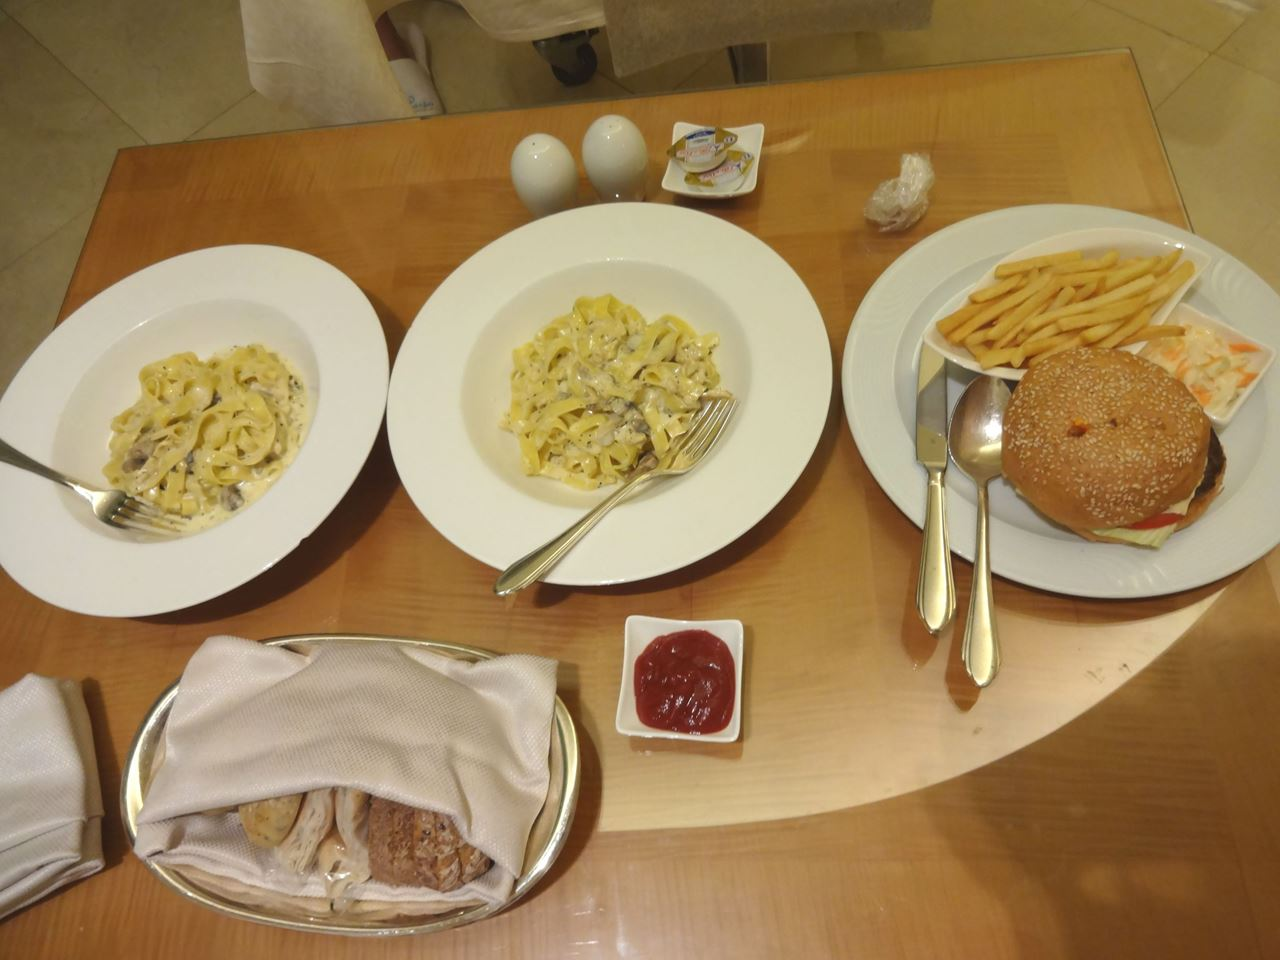 Dinner from the room service menu in Marina Hotel